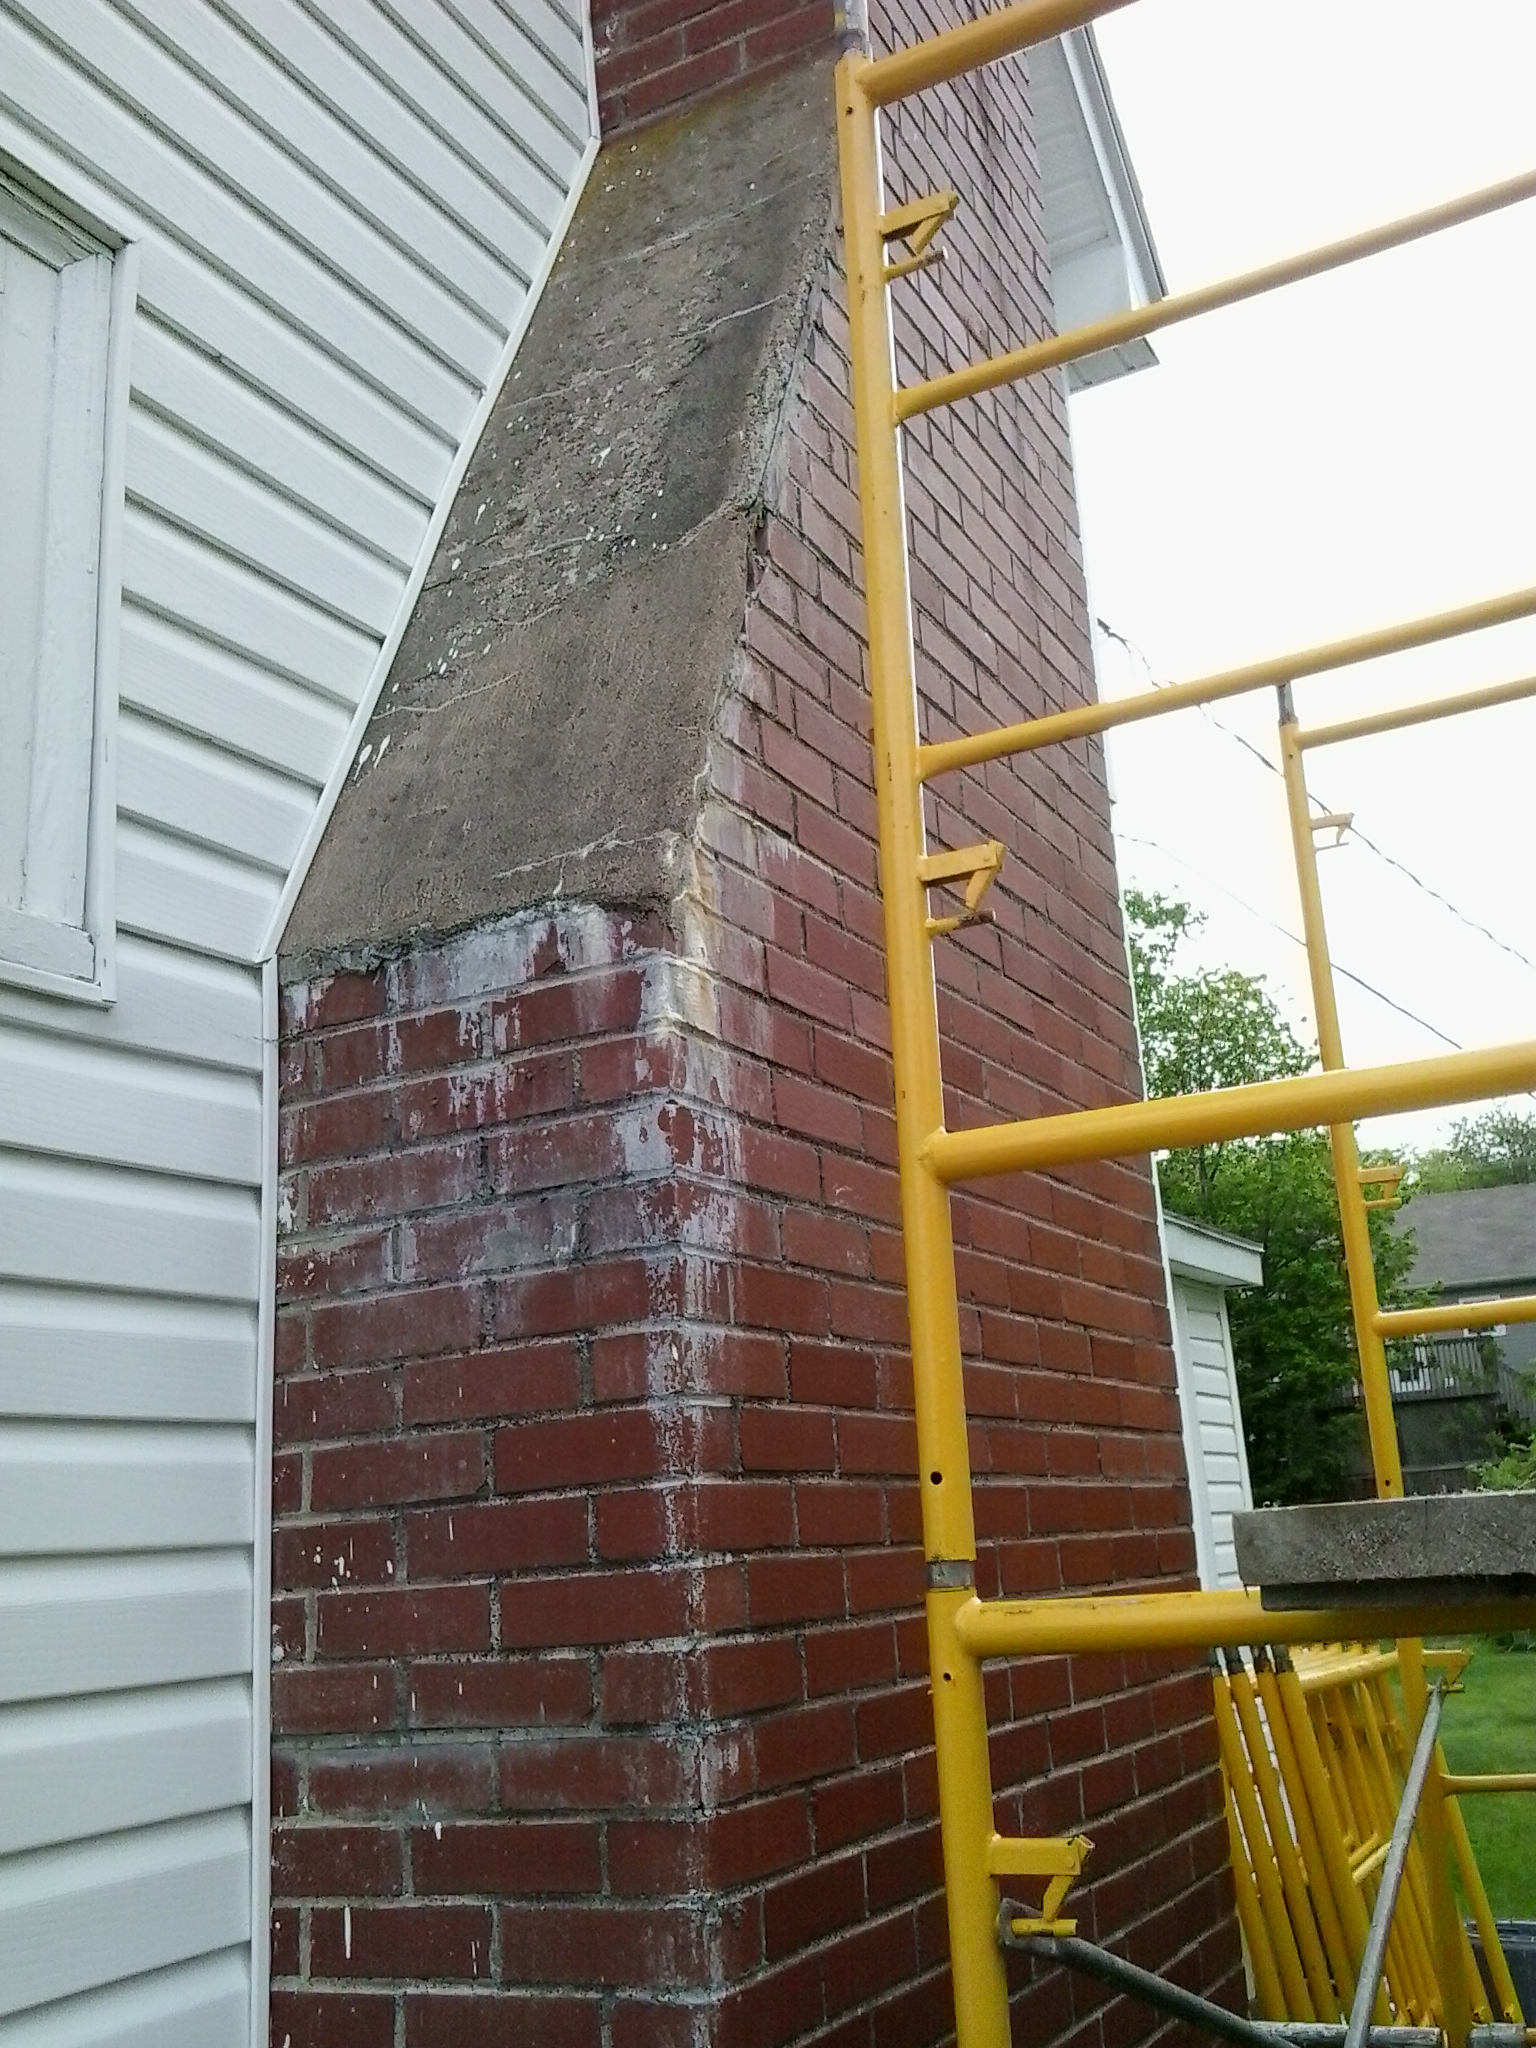 image of chimney construction services completed in Halifax-Dartmouth Regional Municipality, NS by Pro Chimney Services based in Halifax, NS servicing all of the Halifax-Dartmouth Regional Municipality, Bedford, Sackville, Mount Uniacke, Windsor, Hantsport , Wolfville, Kentville, Chester, Mahone Bay, Lunenburg, Bridgewater, Liverpool, Fall River, Wellington, Enfield, Elmsdale, Brookfield, Truro, Musquodoboit Harbour & surrounding areas.